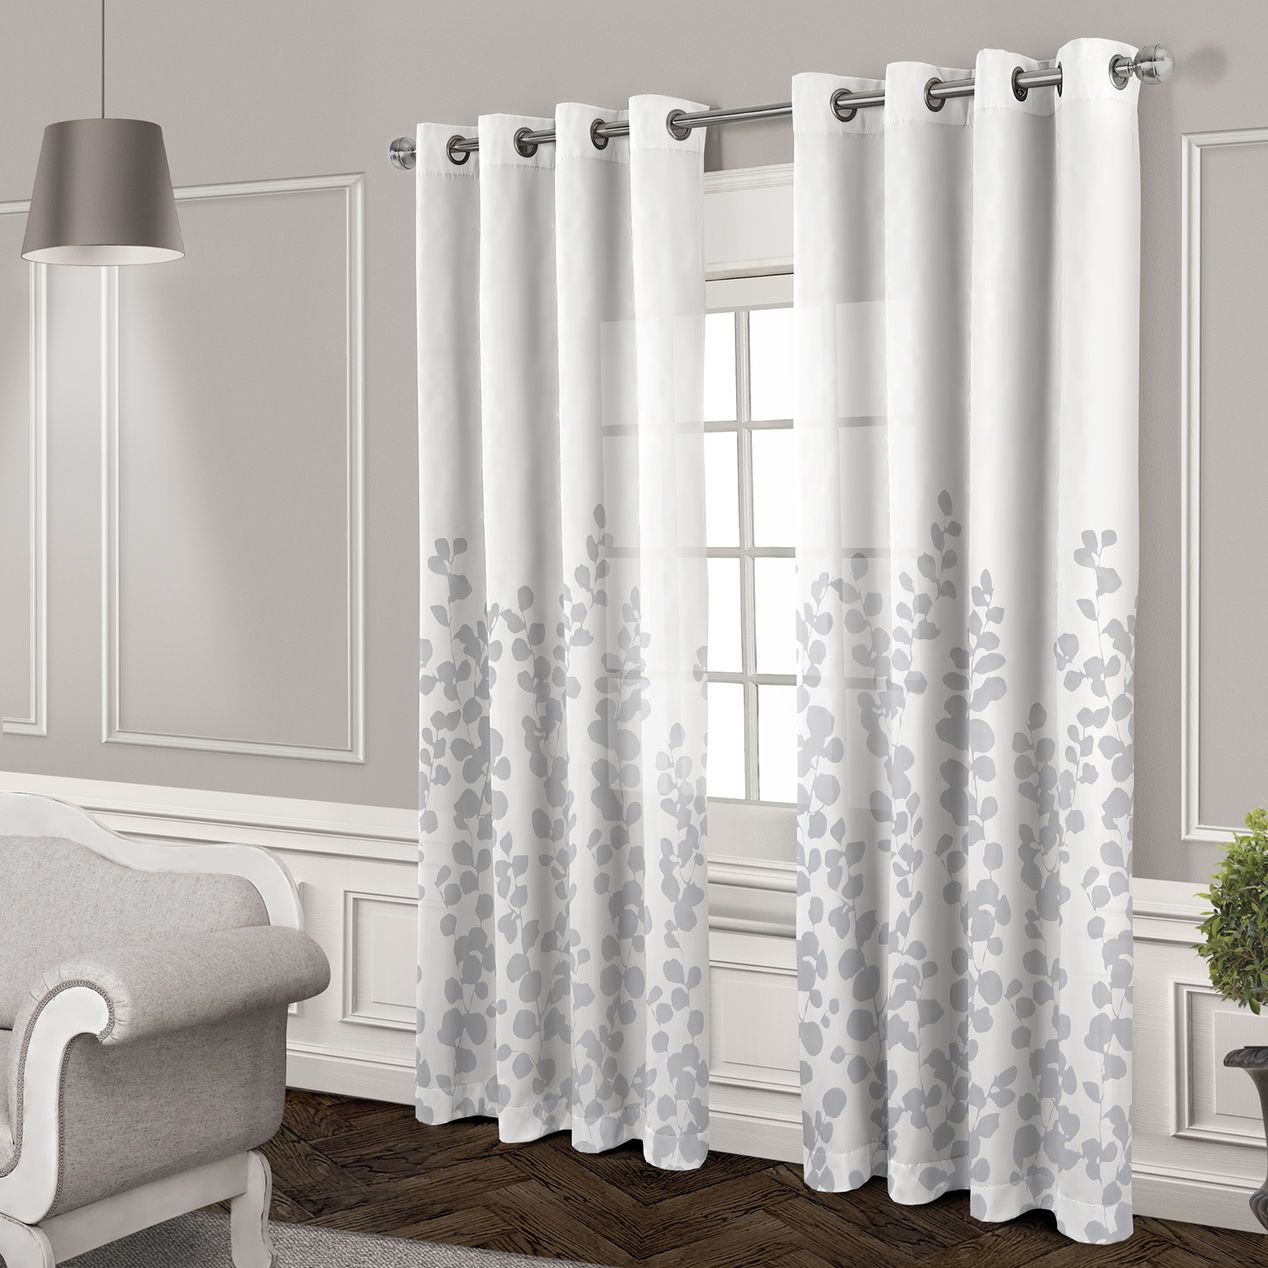 Wilshire Sheer Grommet Curtain Panel White 84 In At Home Home